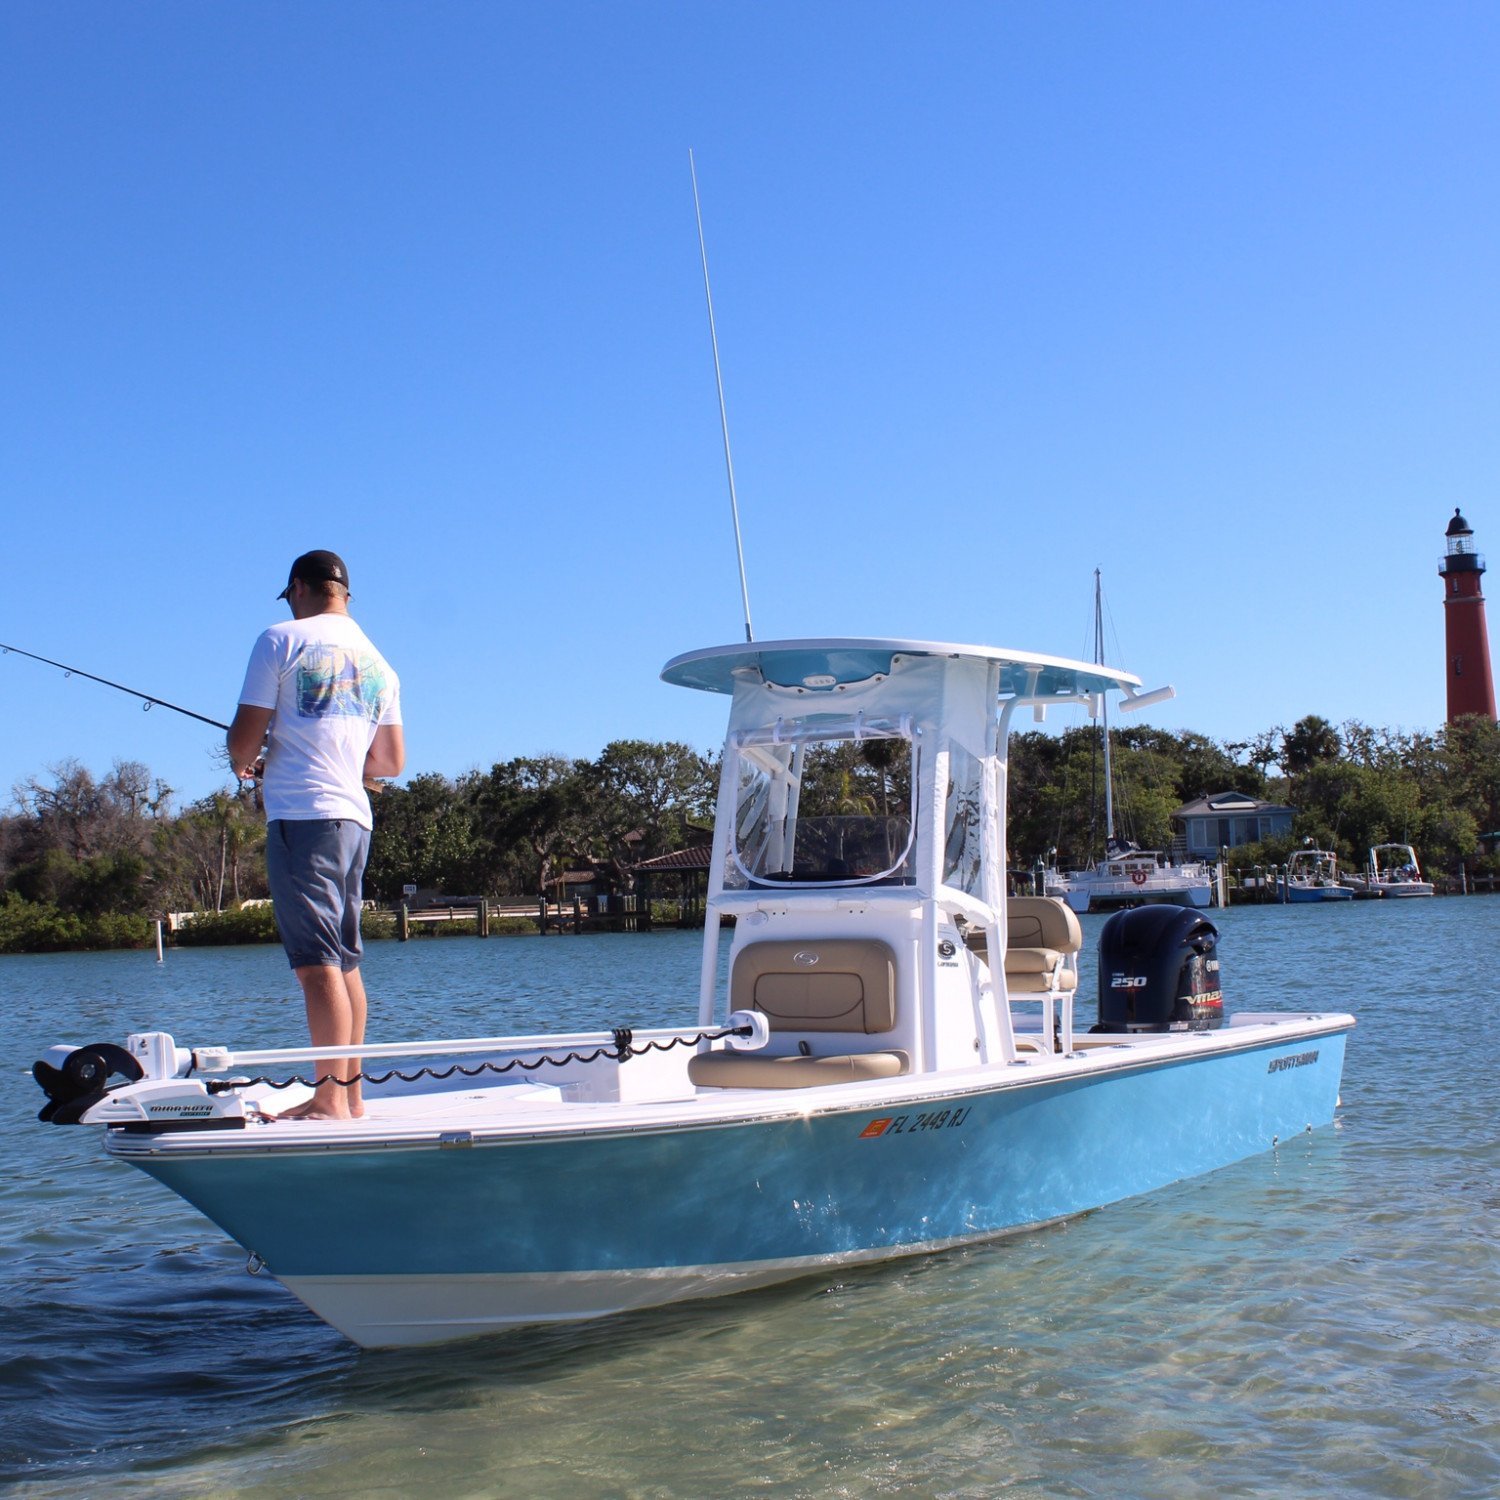 Title: On The Water - On board their Sportsman Masters 247 Bay Boat - Location: Ponce Inlet, FL. Participating in the Photo Contest #SportsmanMay2018